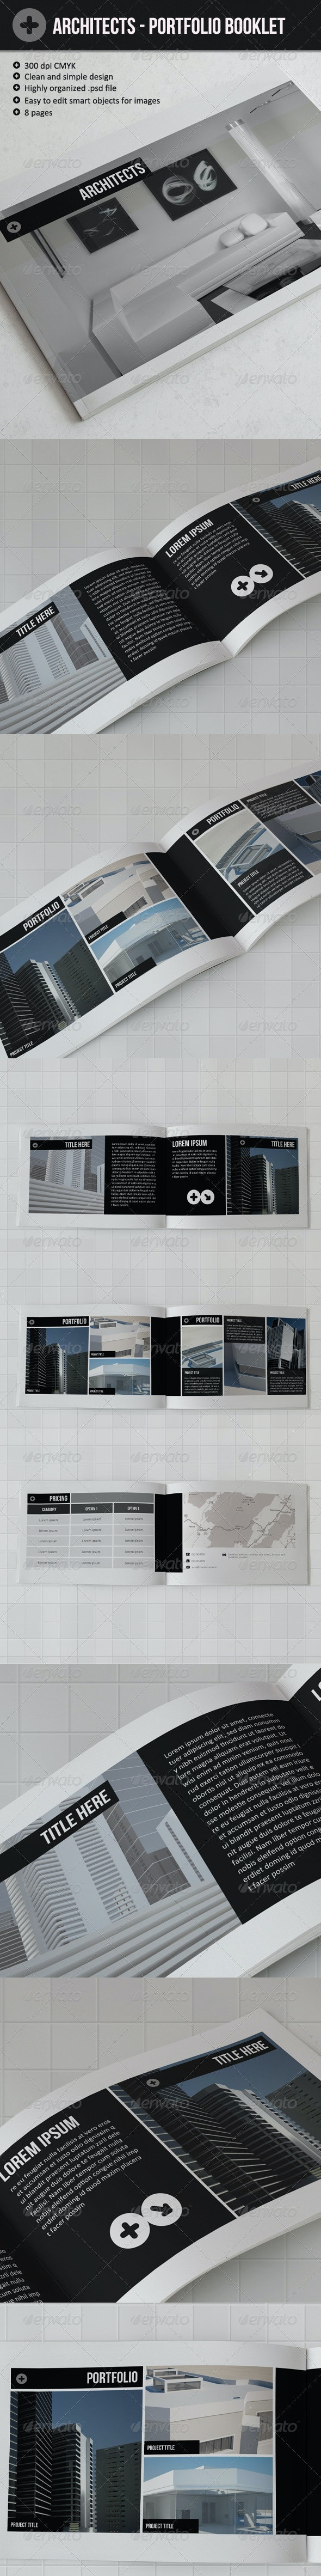 Architects - Portfolio booklet - Portfolio Brochures